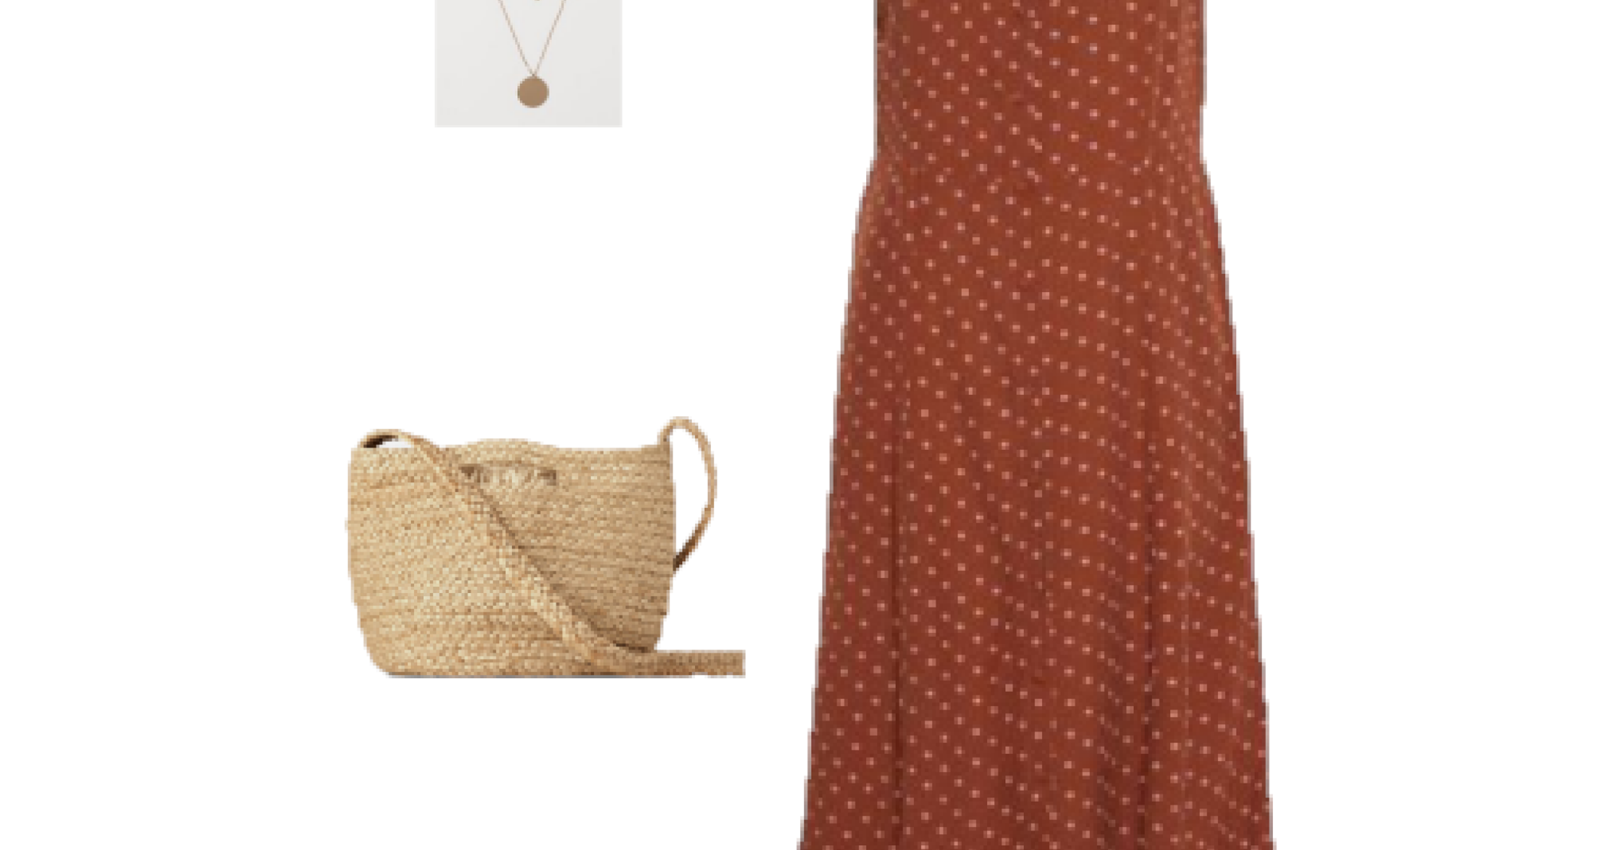 Outfit of the Day: A brown polka-dot dress